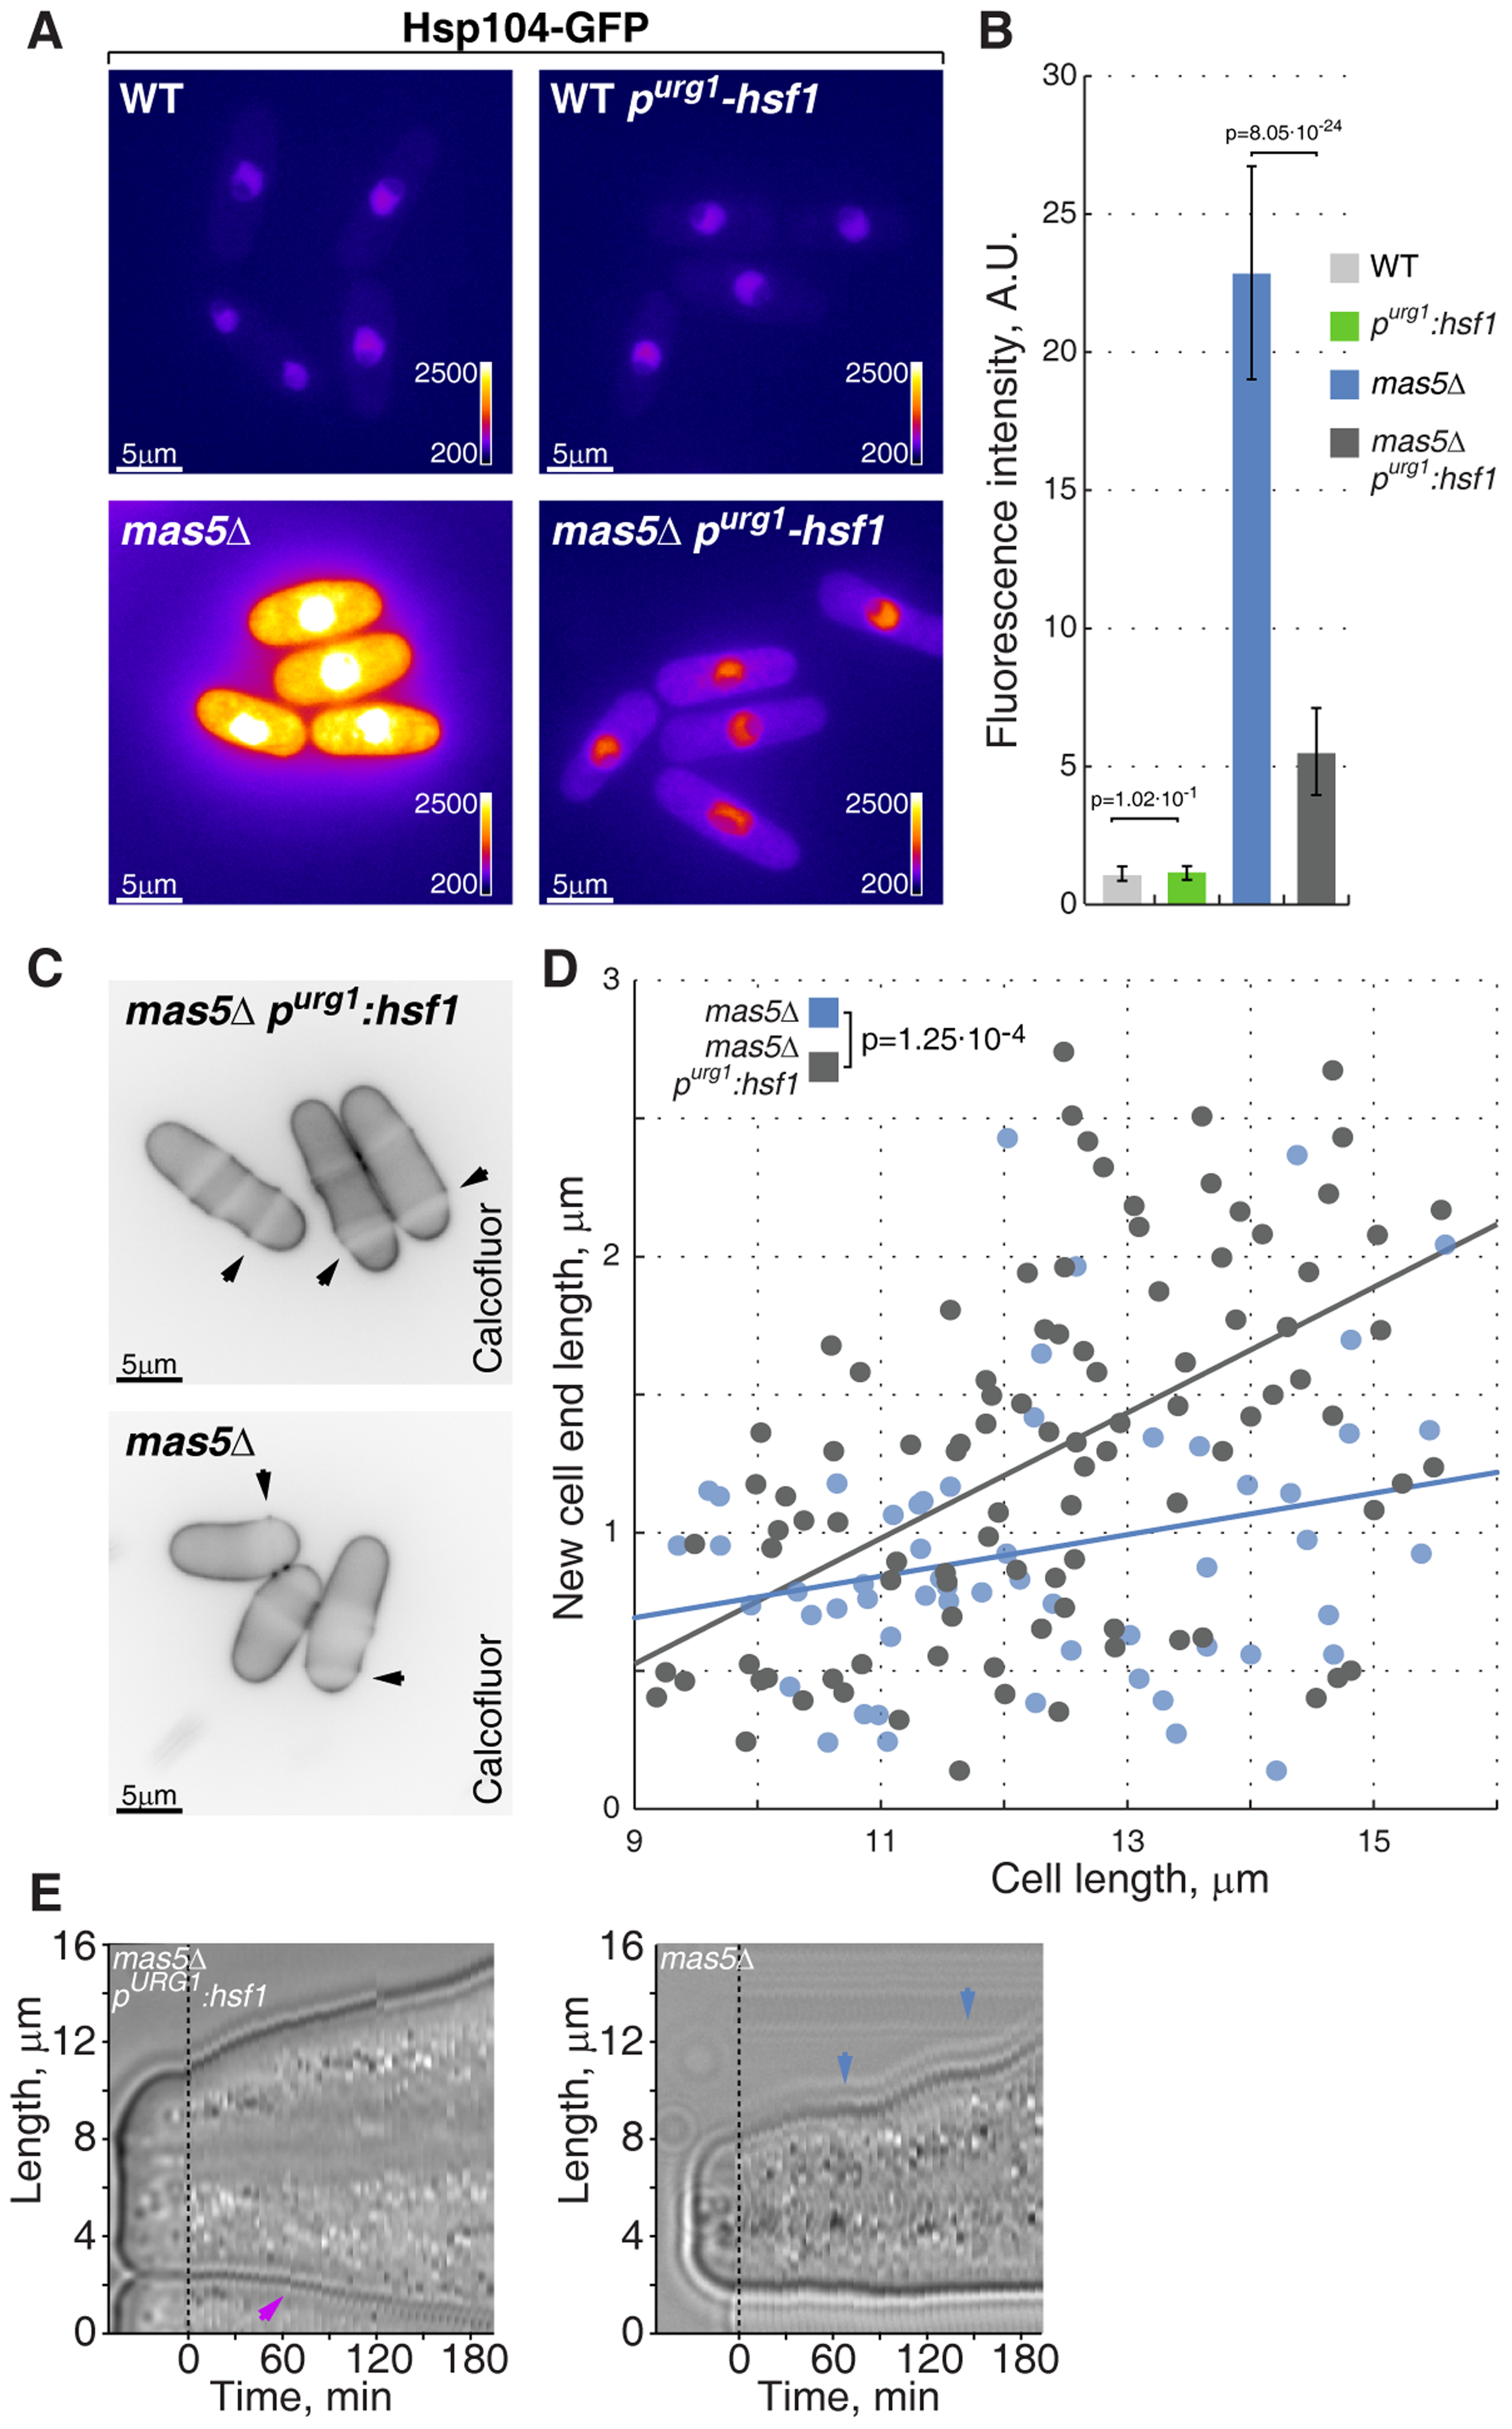 Repression of Hsf1 expression in <i>mas5Δ</i> cells rescues the growth patterning defects.